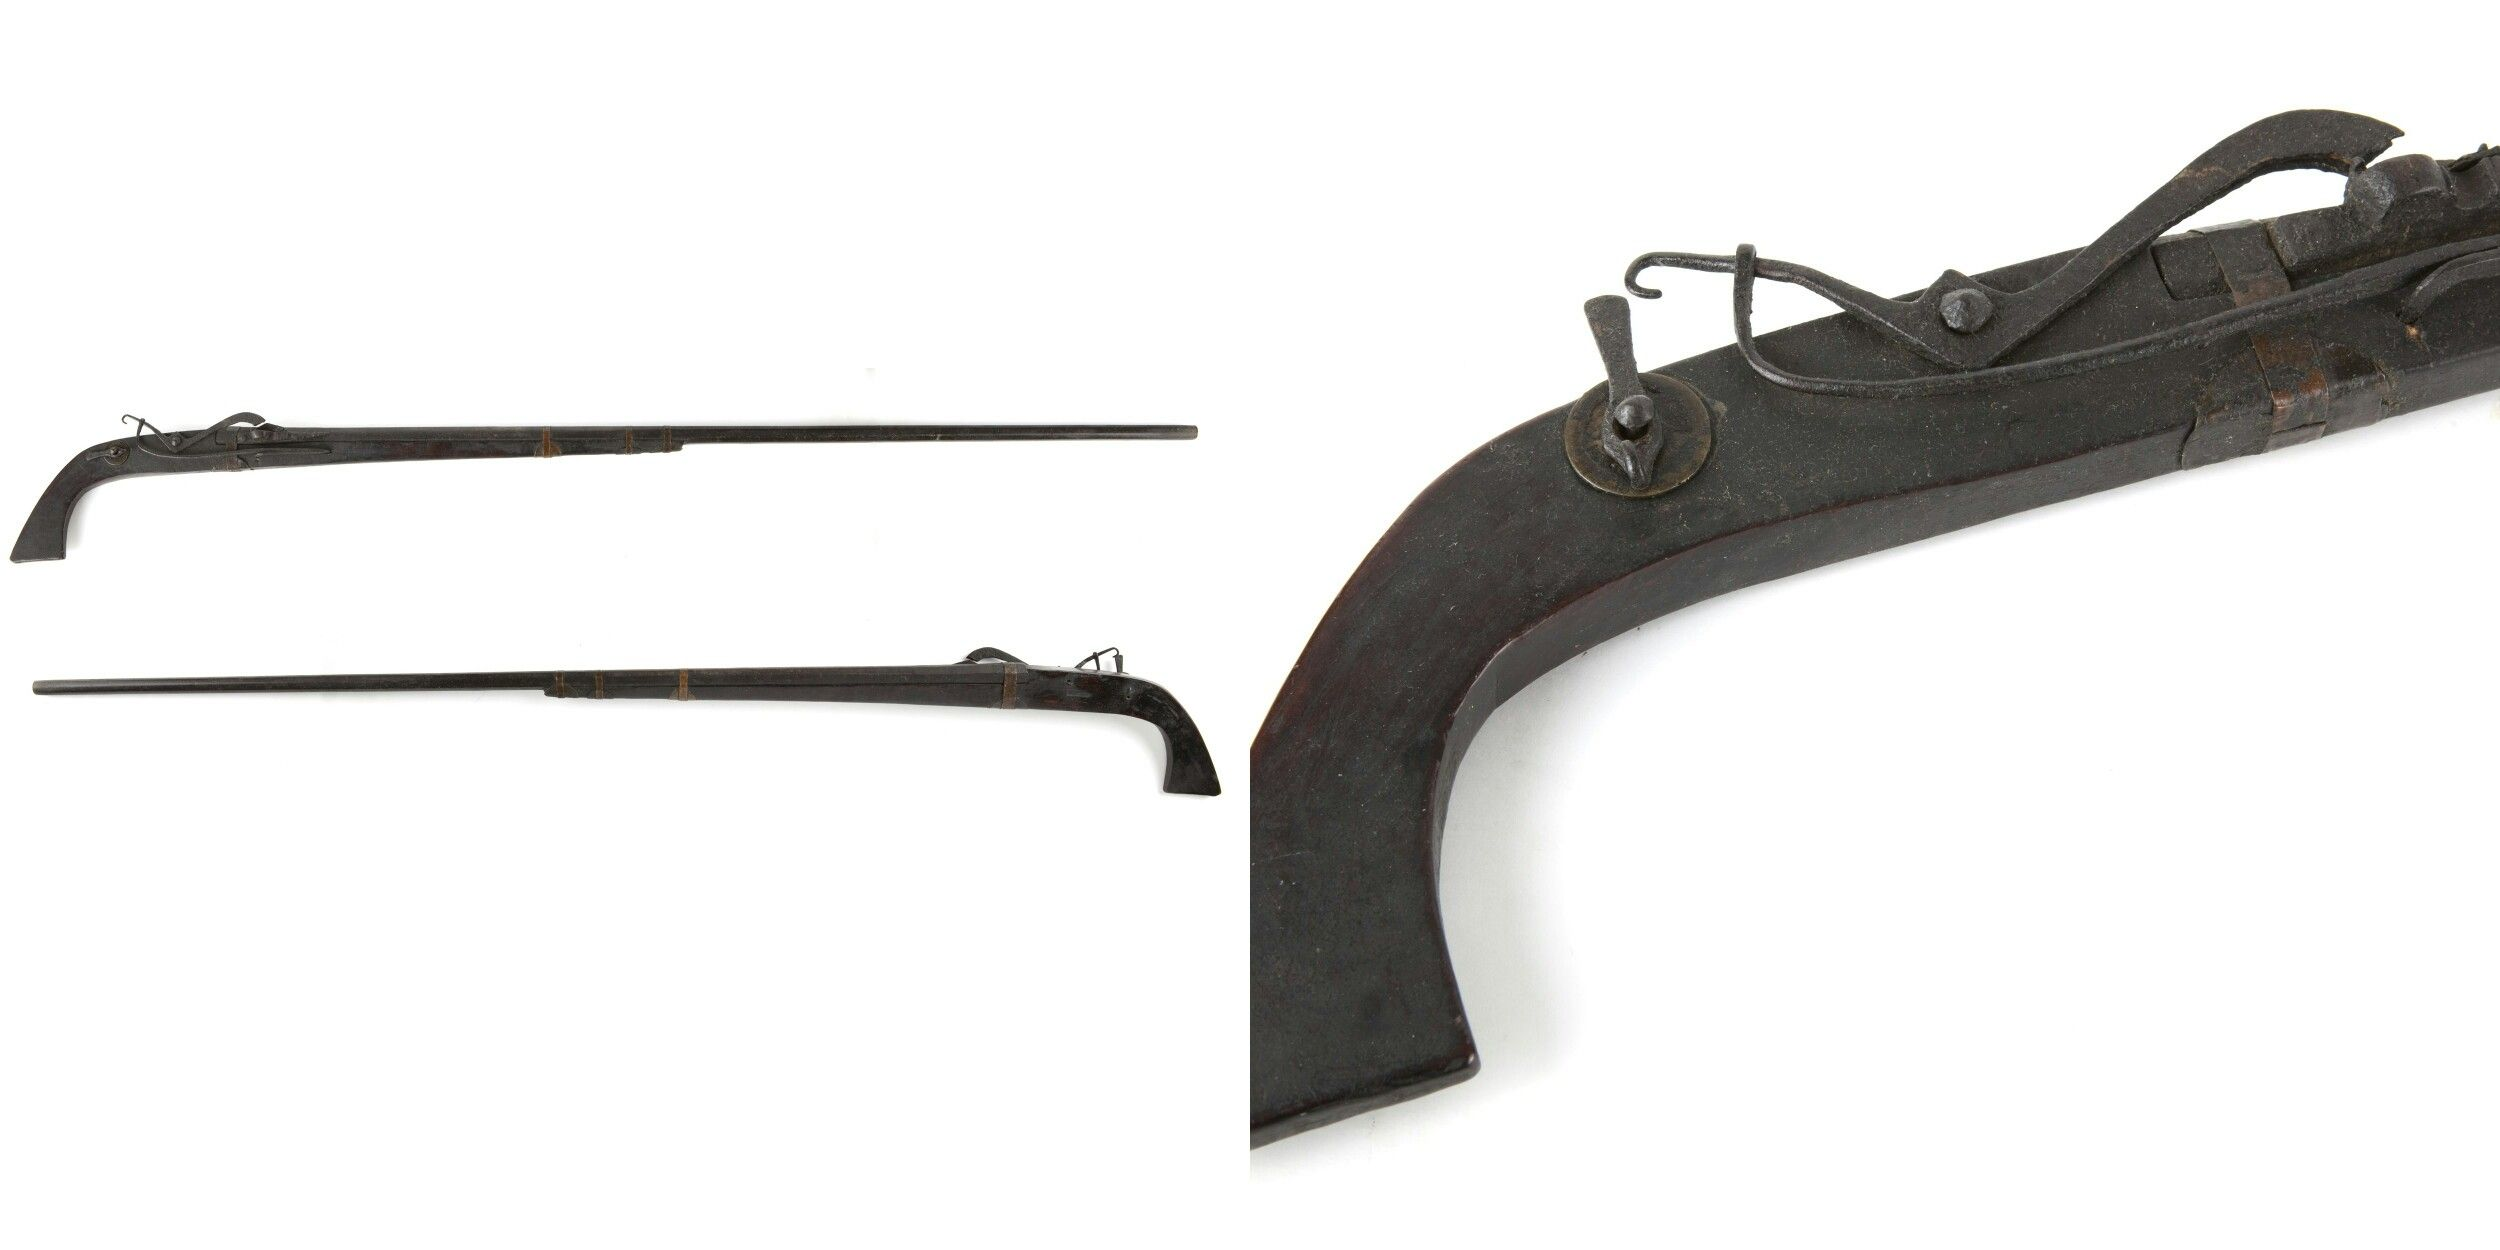 Indonesian Matchlock Musket Wrought Iron Barrel Fastened To Cincin Pita Black Wooden Stock With Copper Rings